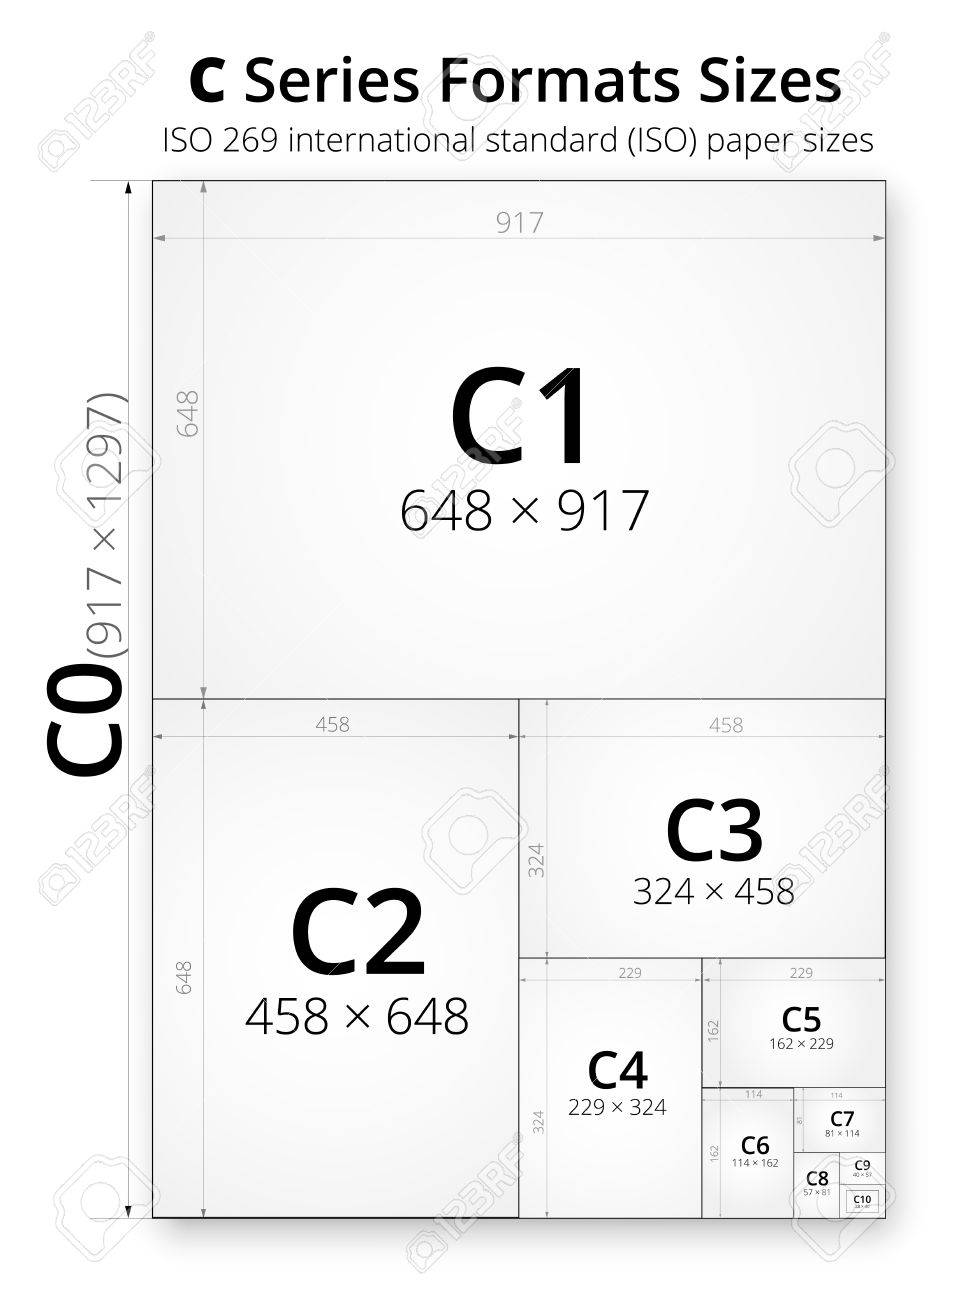 size of series c paper sheets comparison chart from c0 to c10 format in mm